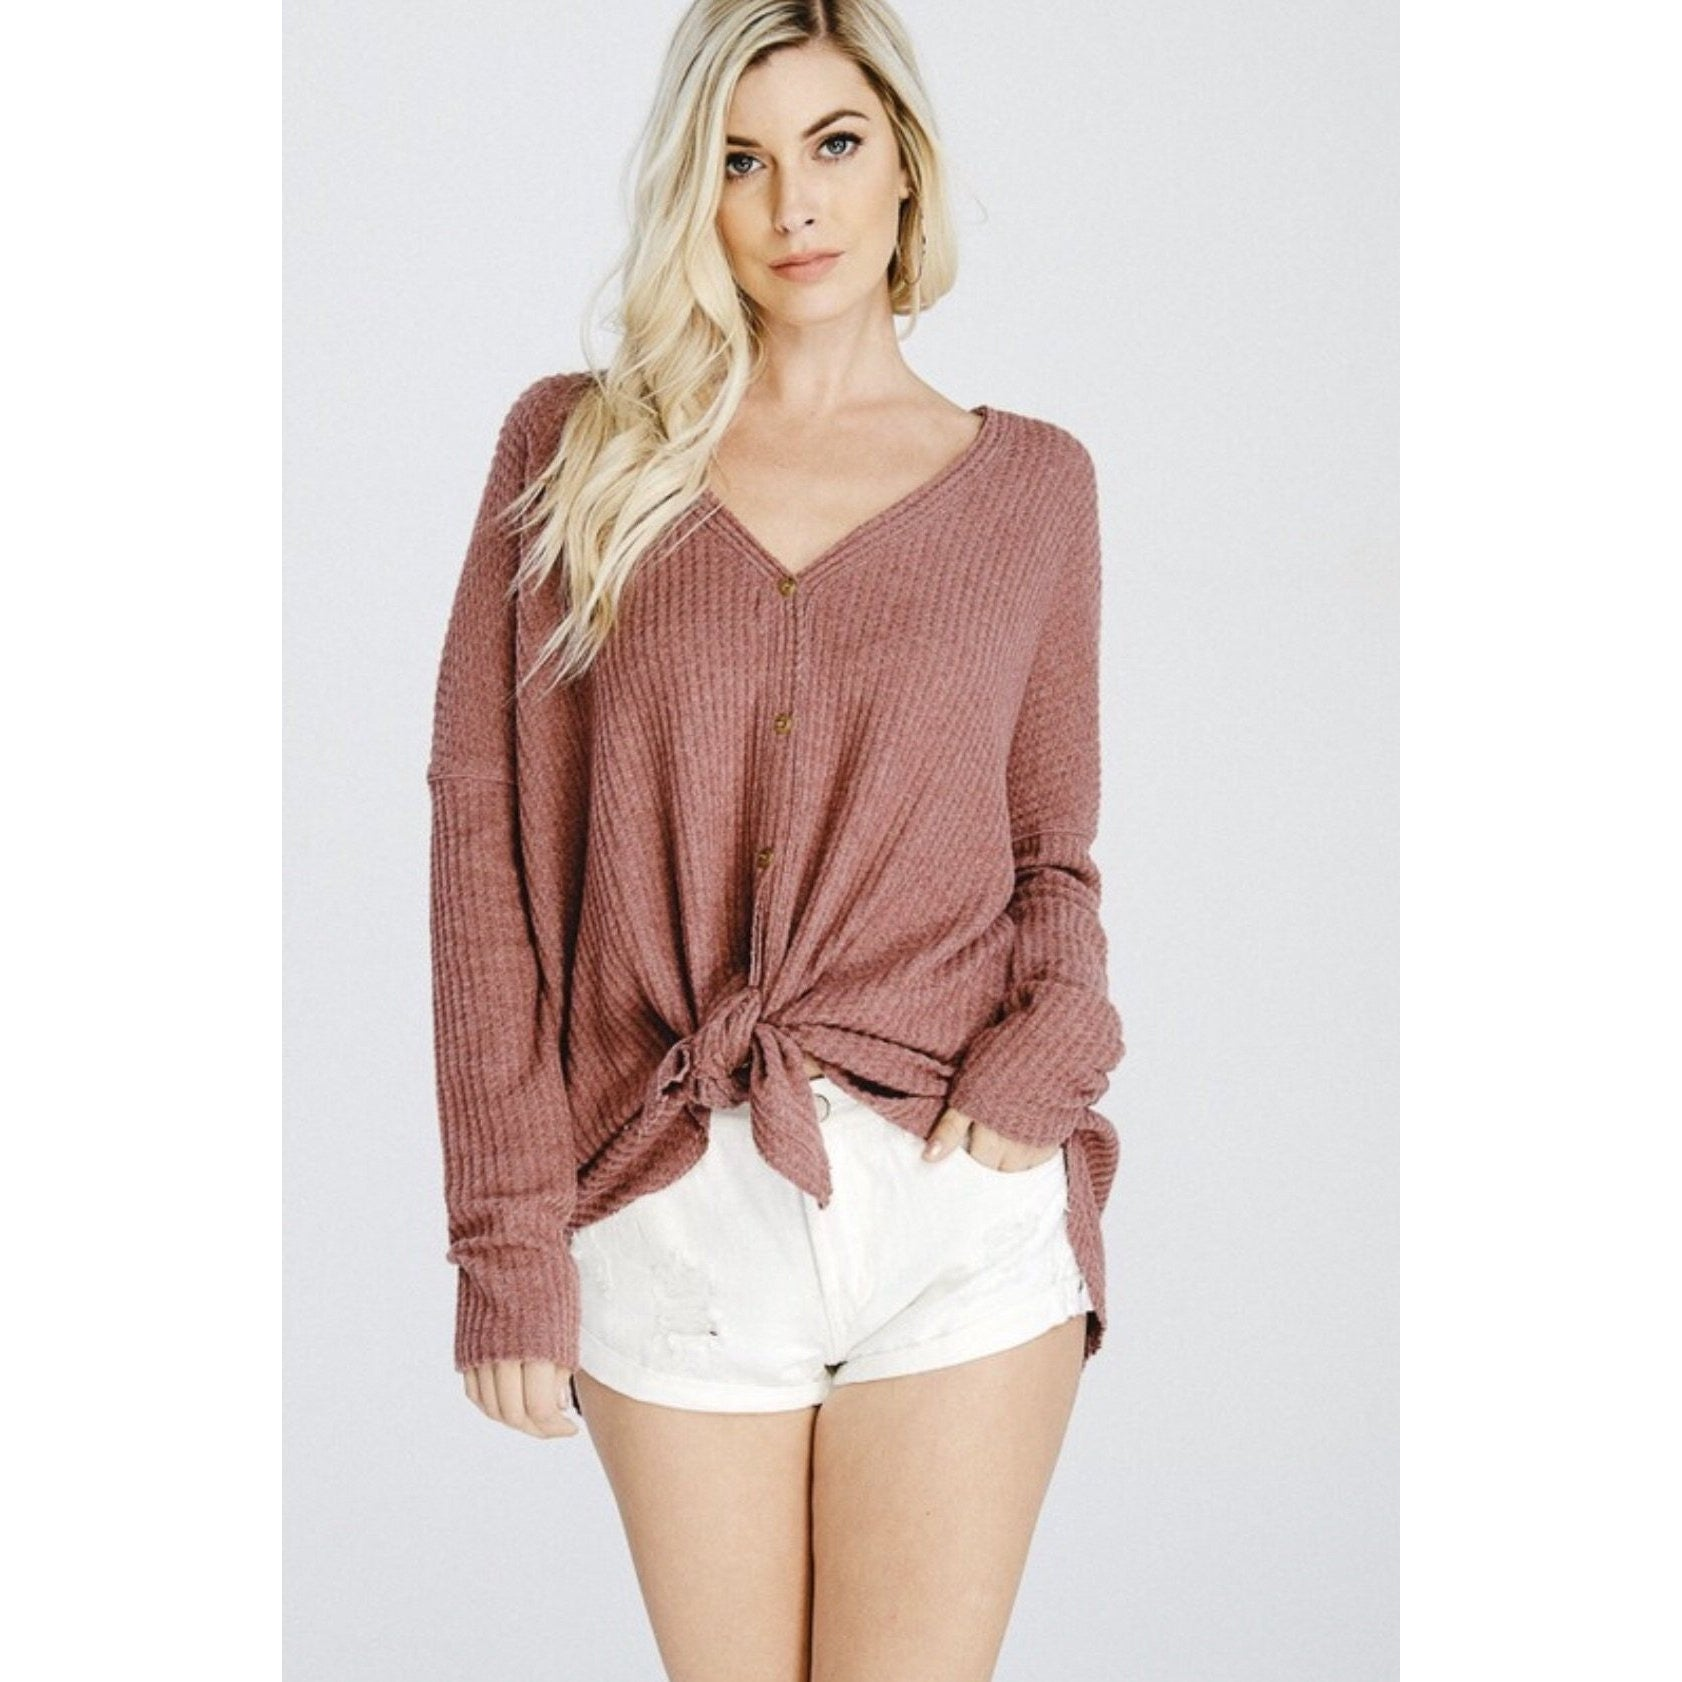 Knotty girl top